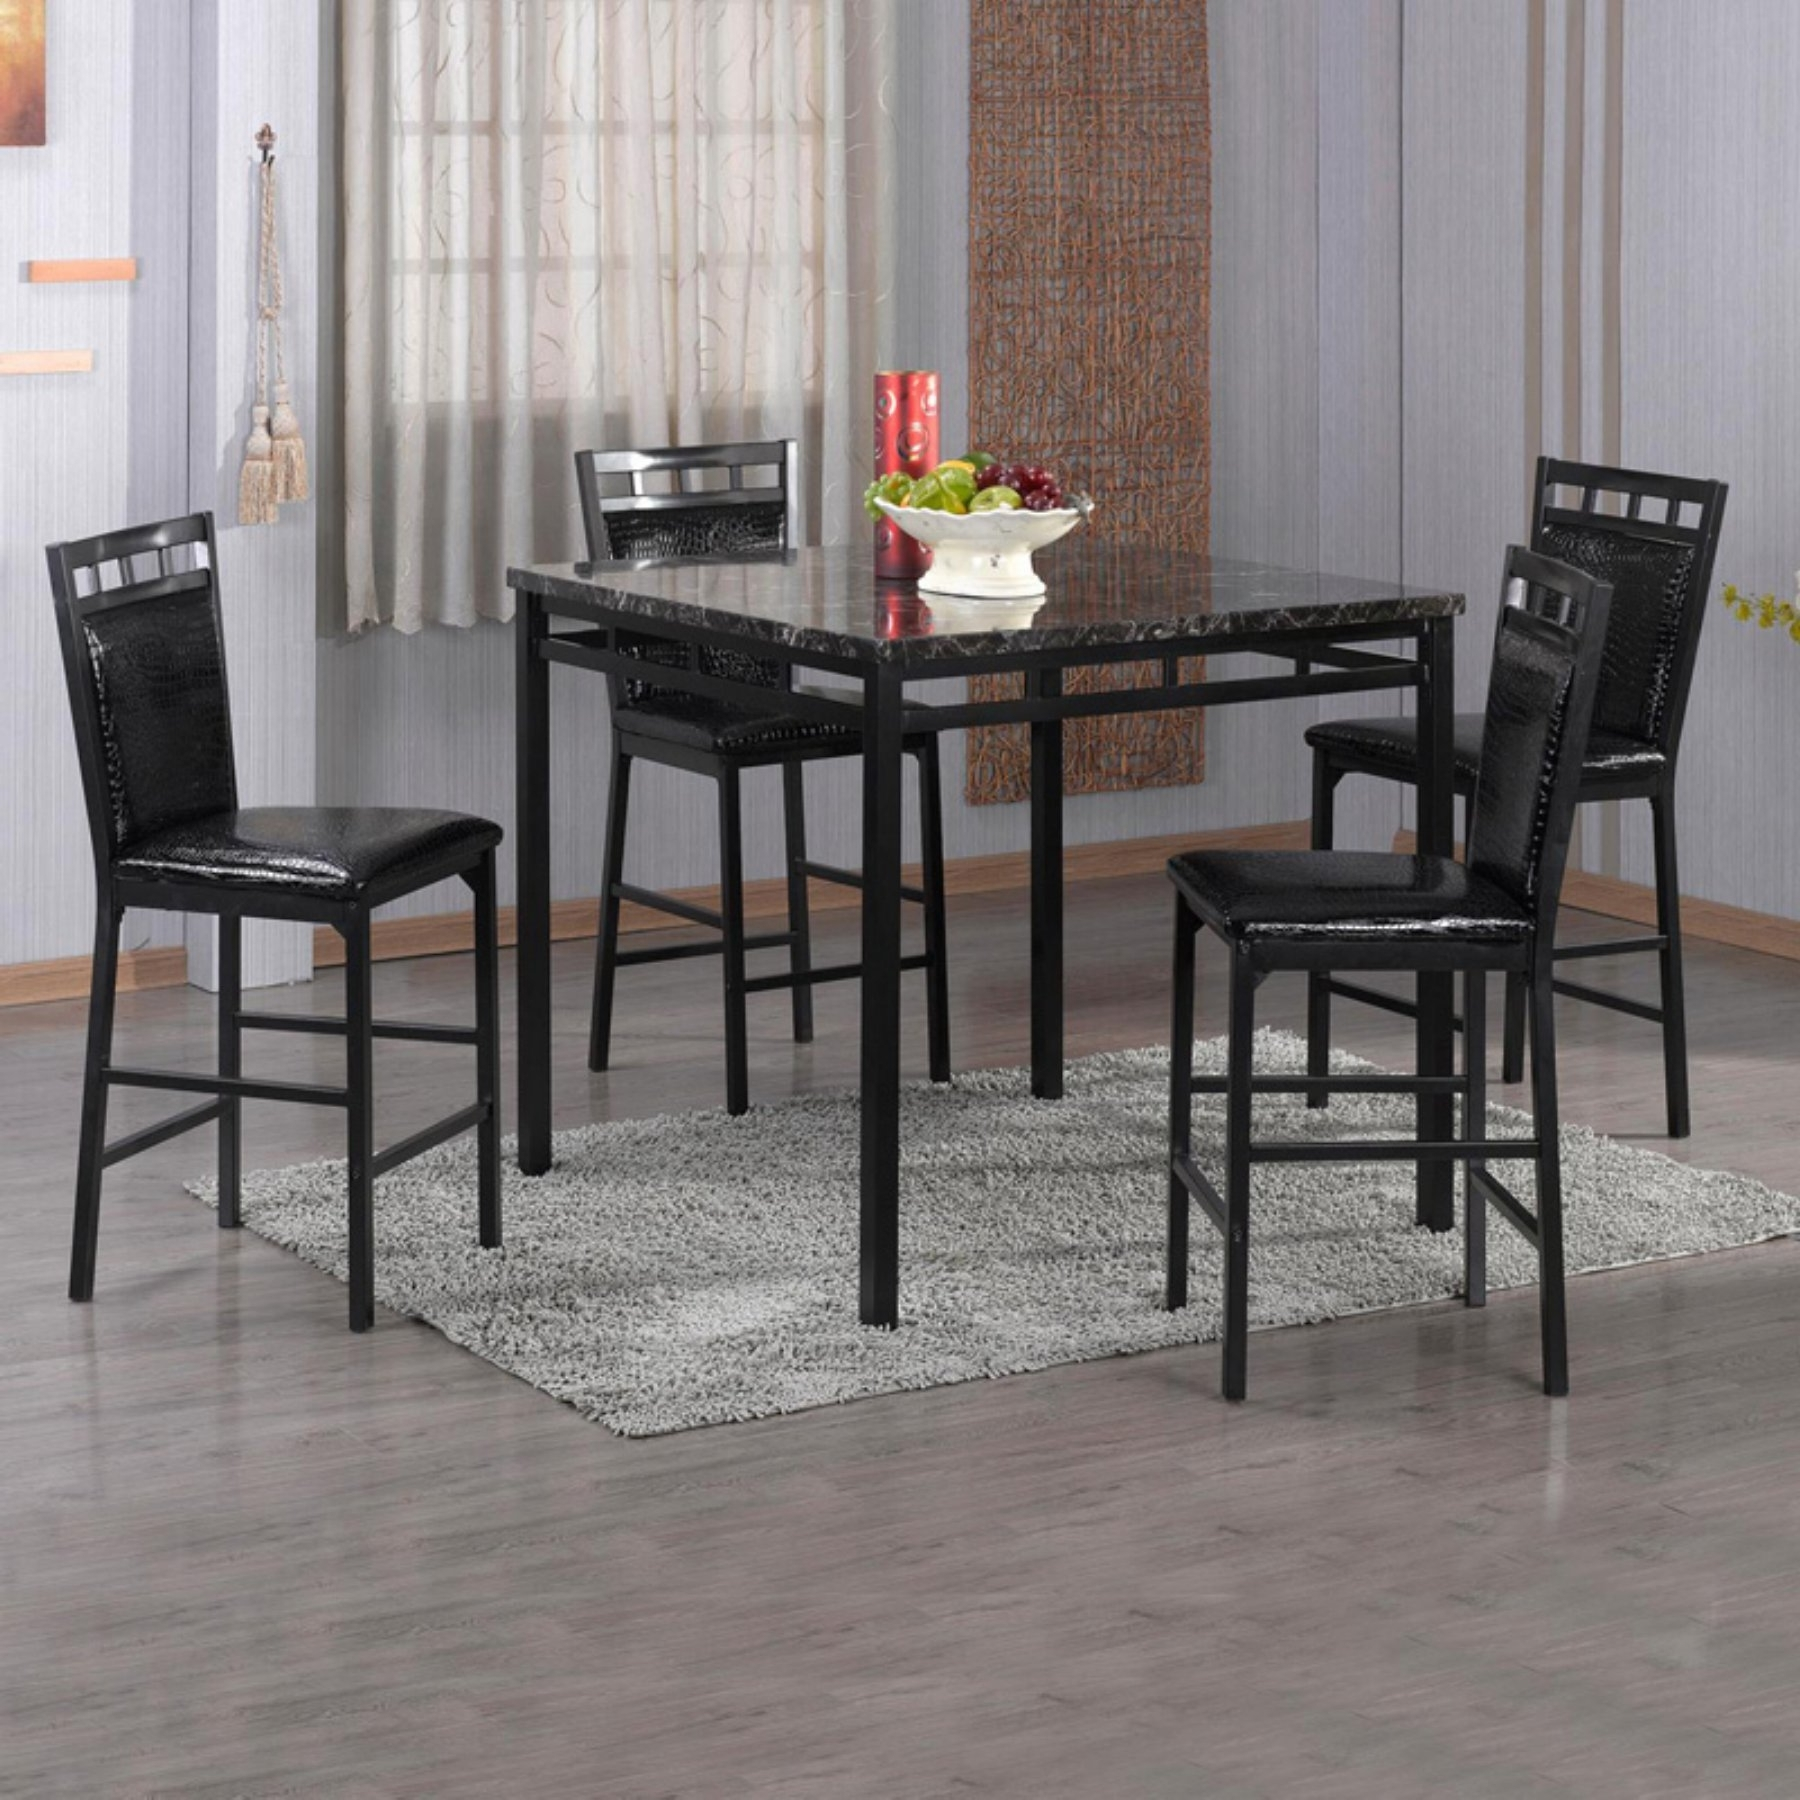 2018 Market 7 Piece Counter Sets For Home Source Industries 5 Piece Counter Height Dining Table Set In (View 6 of 25)